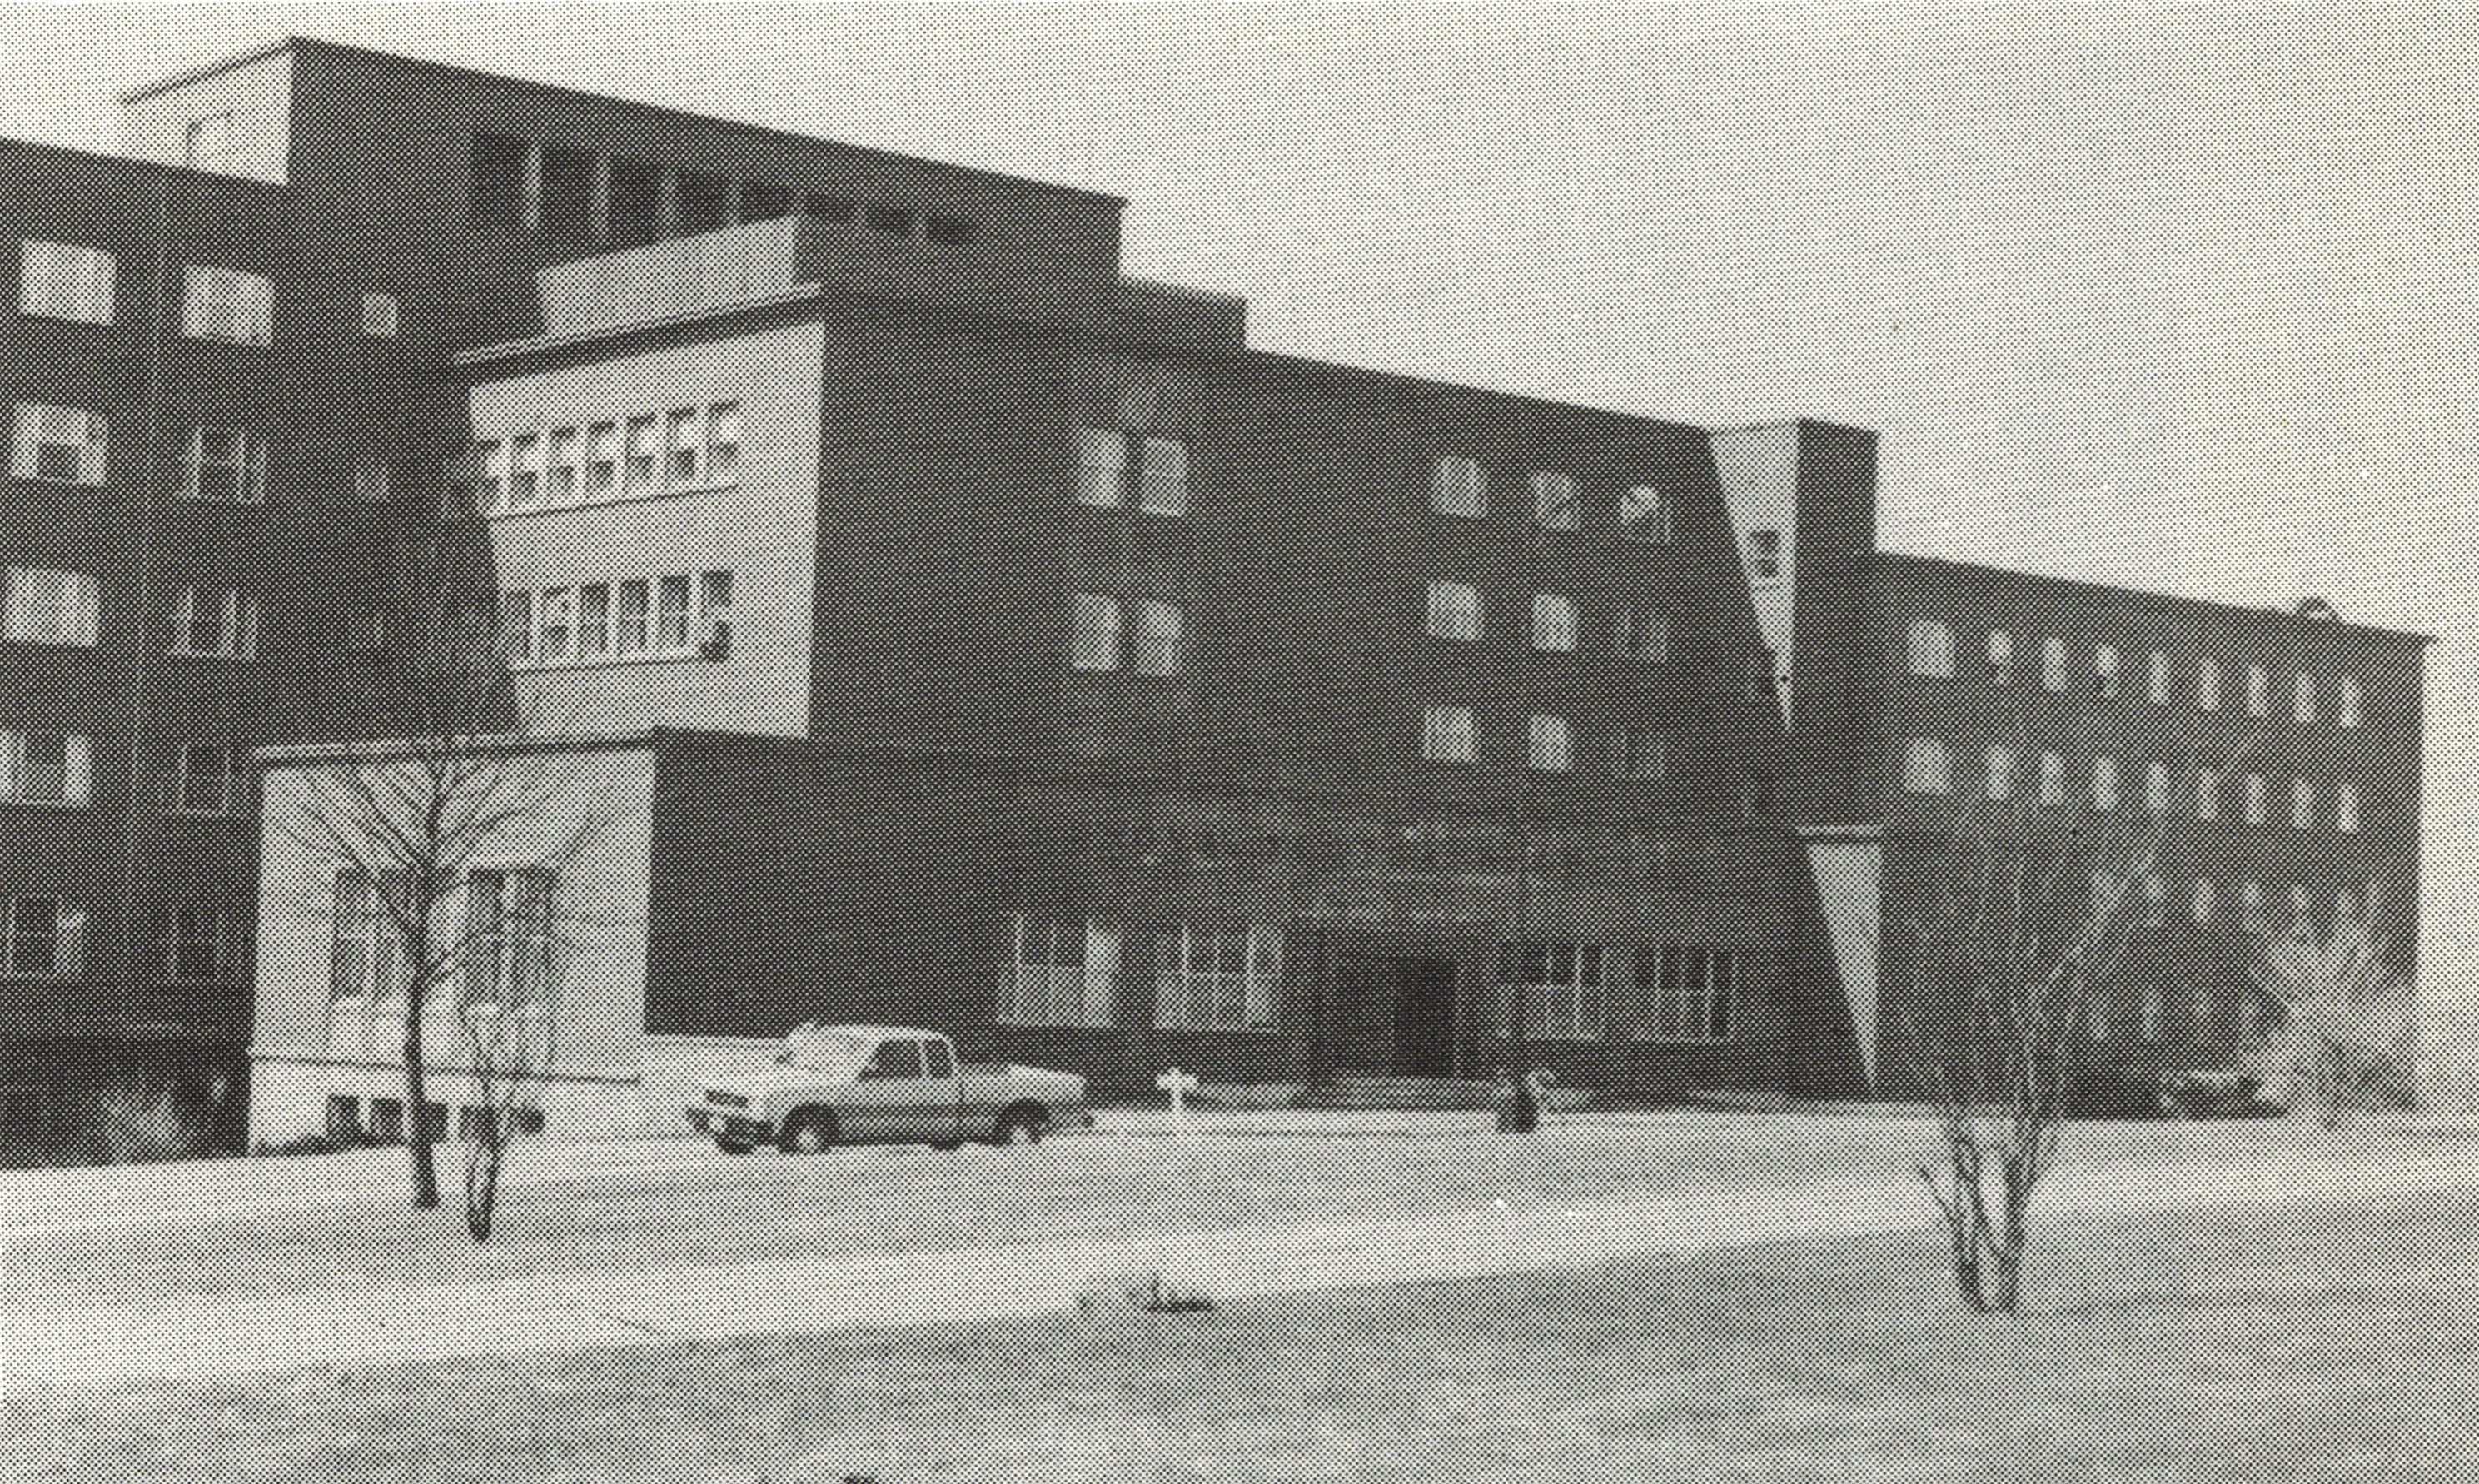 old black and white photo of large hospital building with car in front